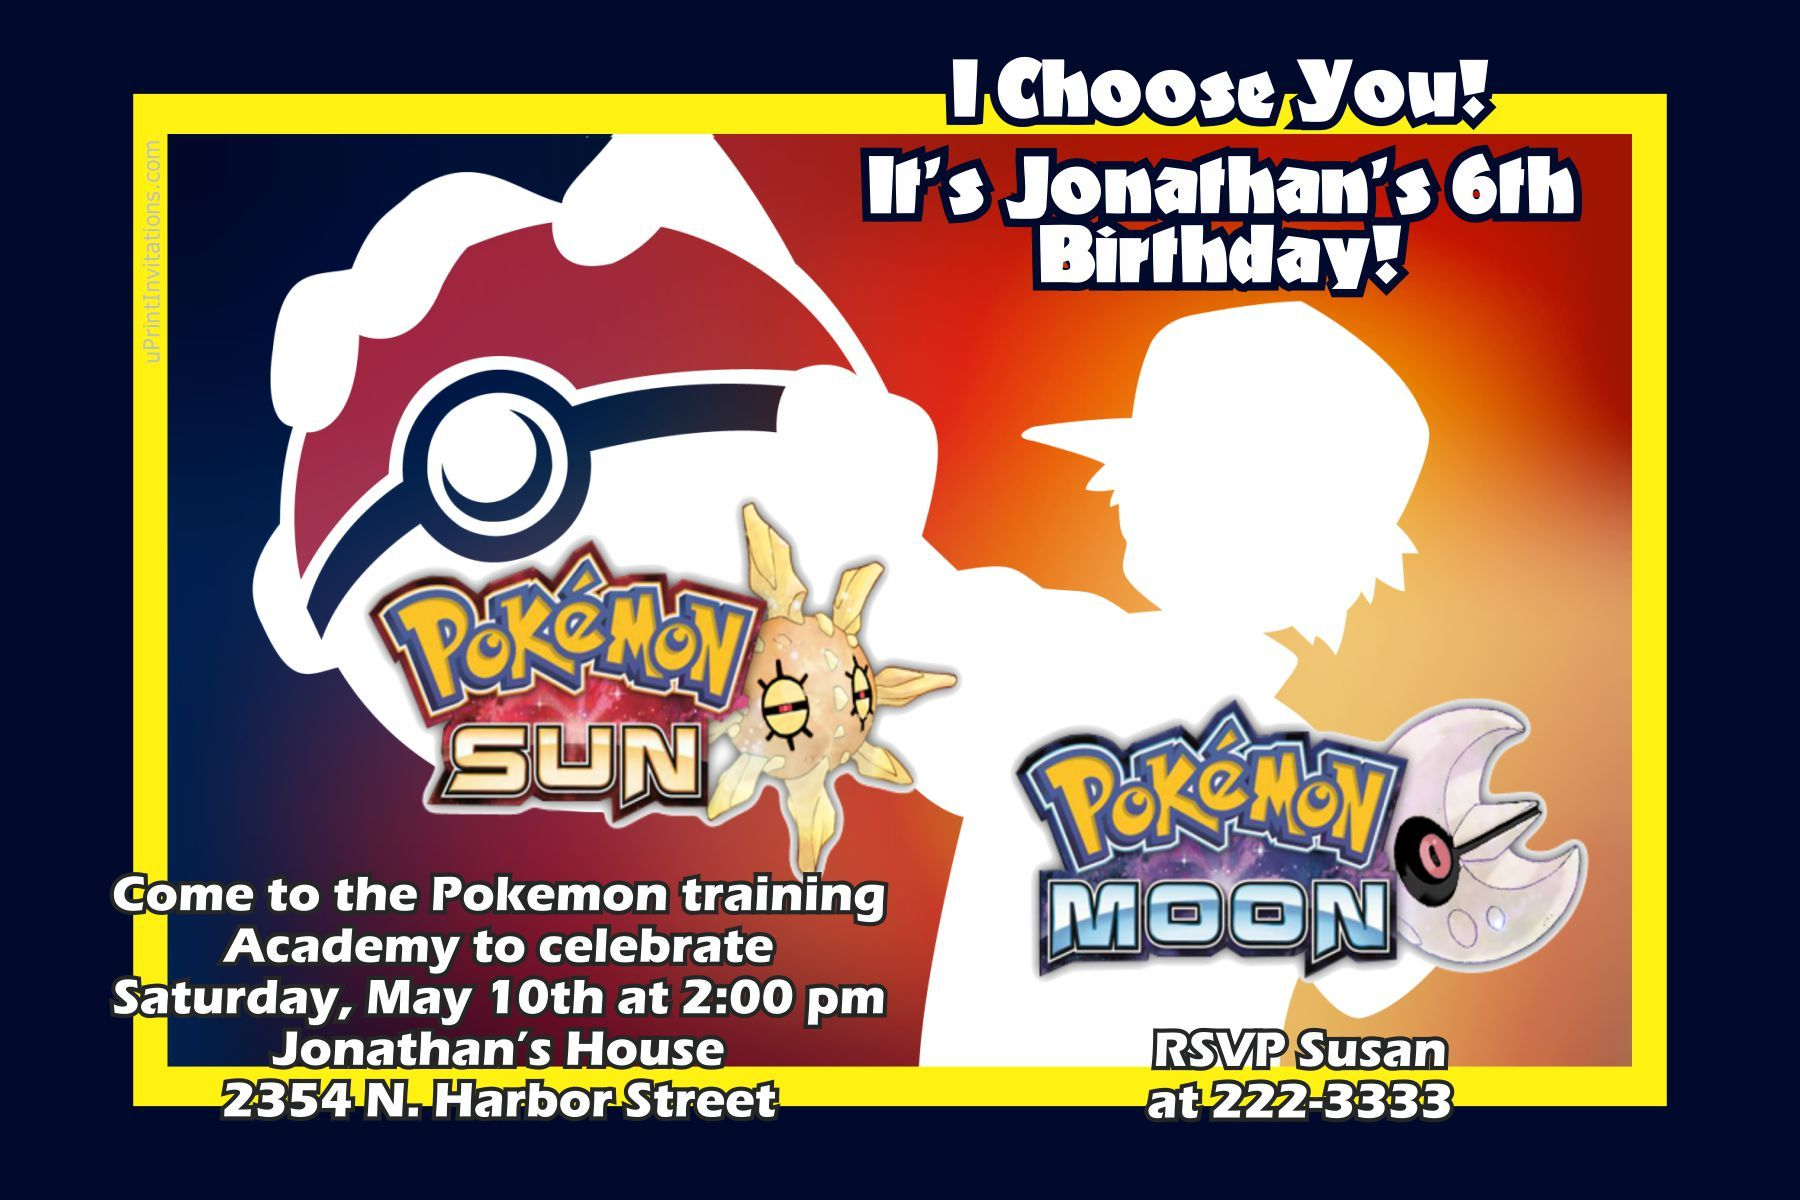 Pokemon Sun and Moon Birthday Invitations - Digital Download - Get ...